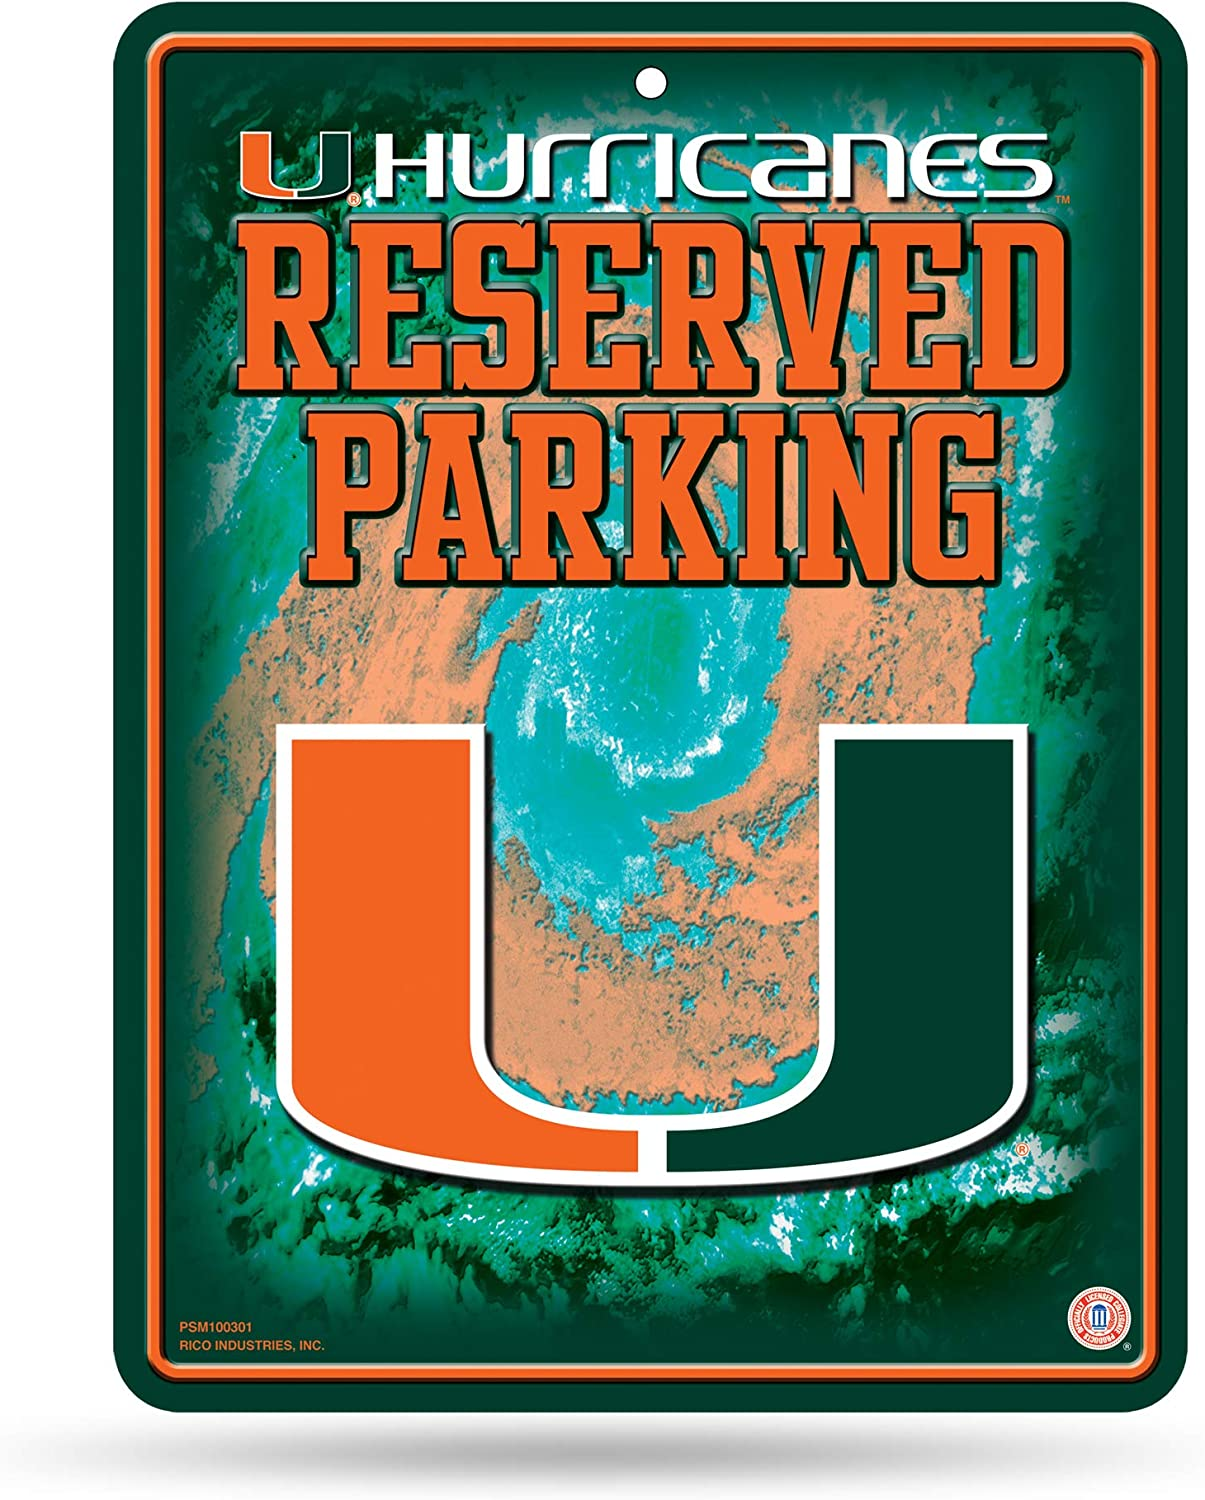 Rico Industries NCAA Fan Shop 8.5-Inch by 11-Inch Metal Parking Sign Décor